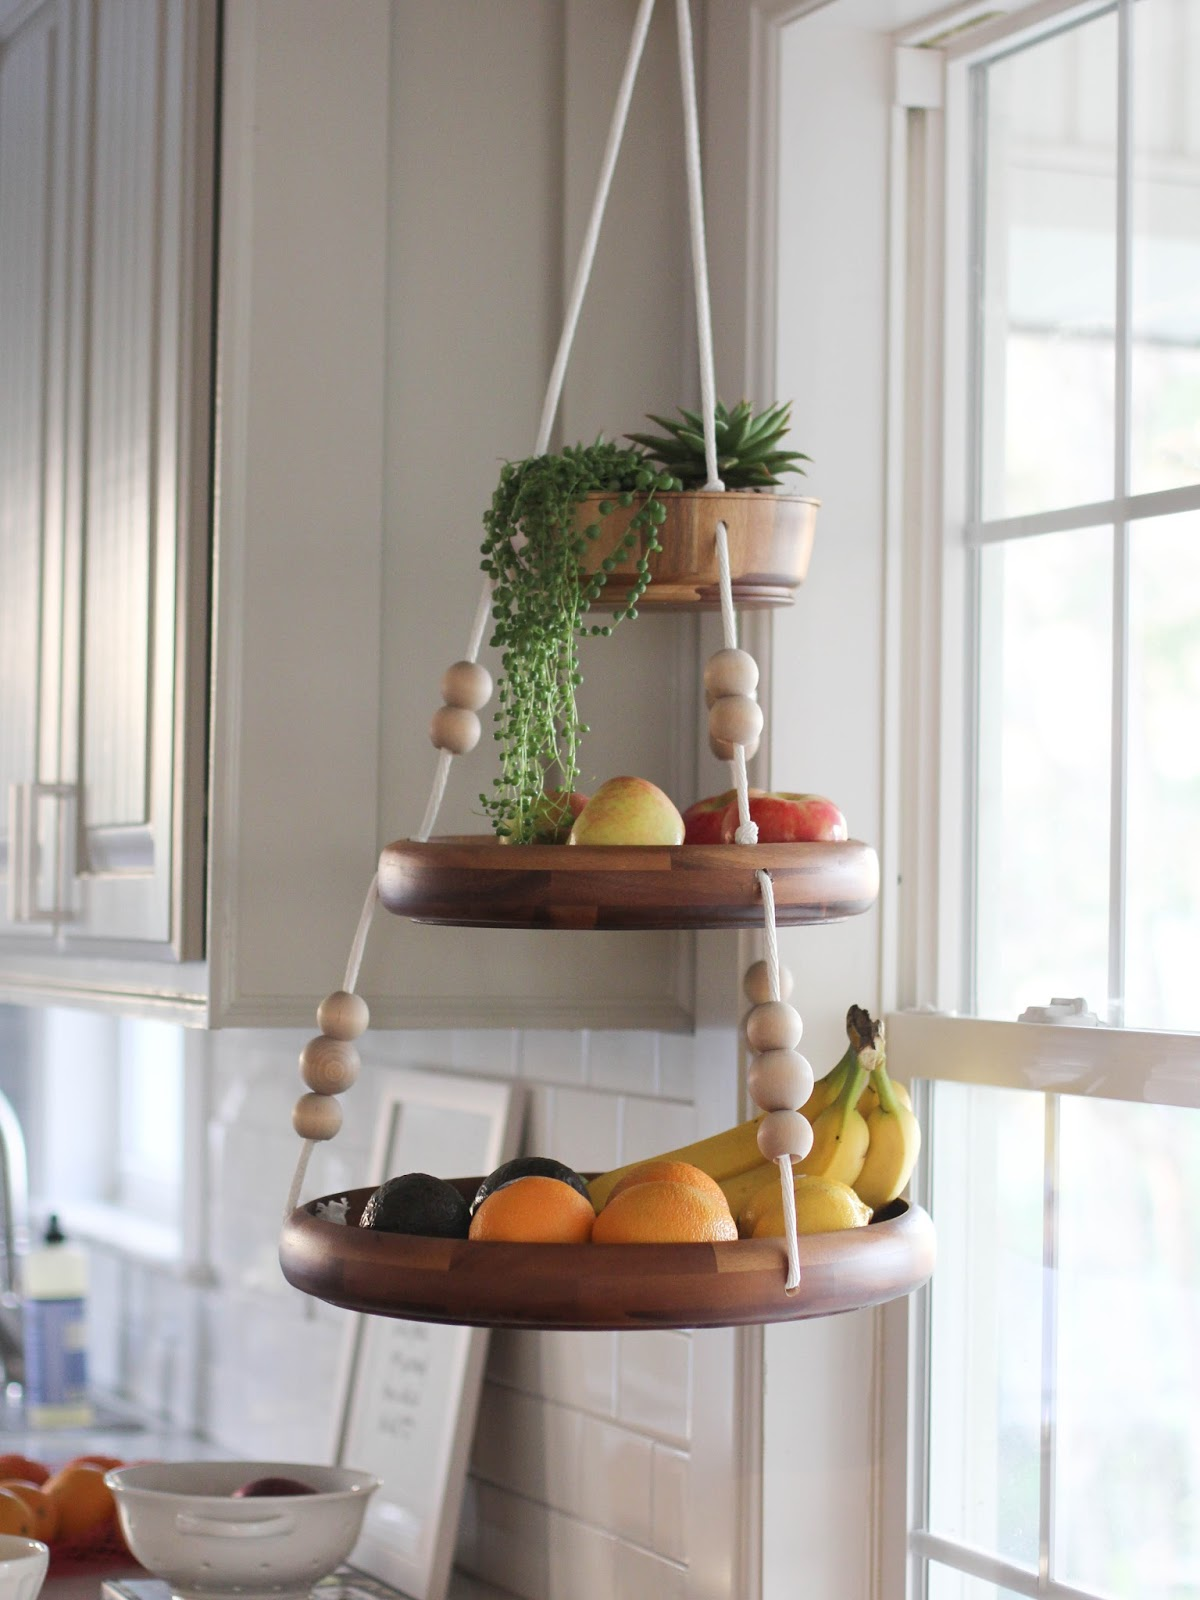 Baskets To Hang On Kitchen Wall